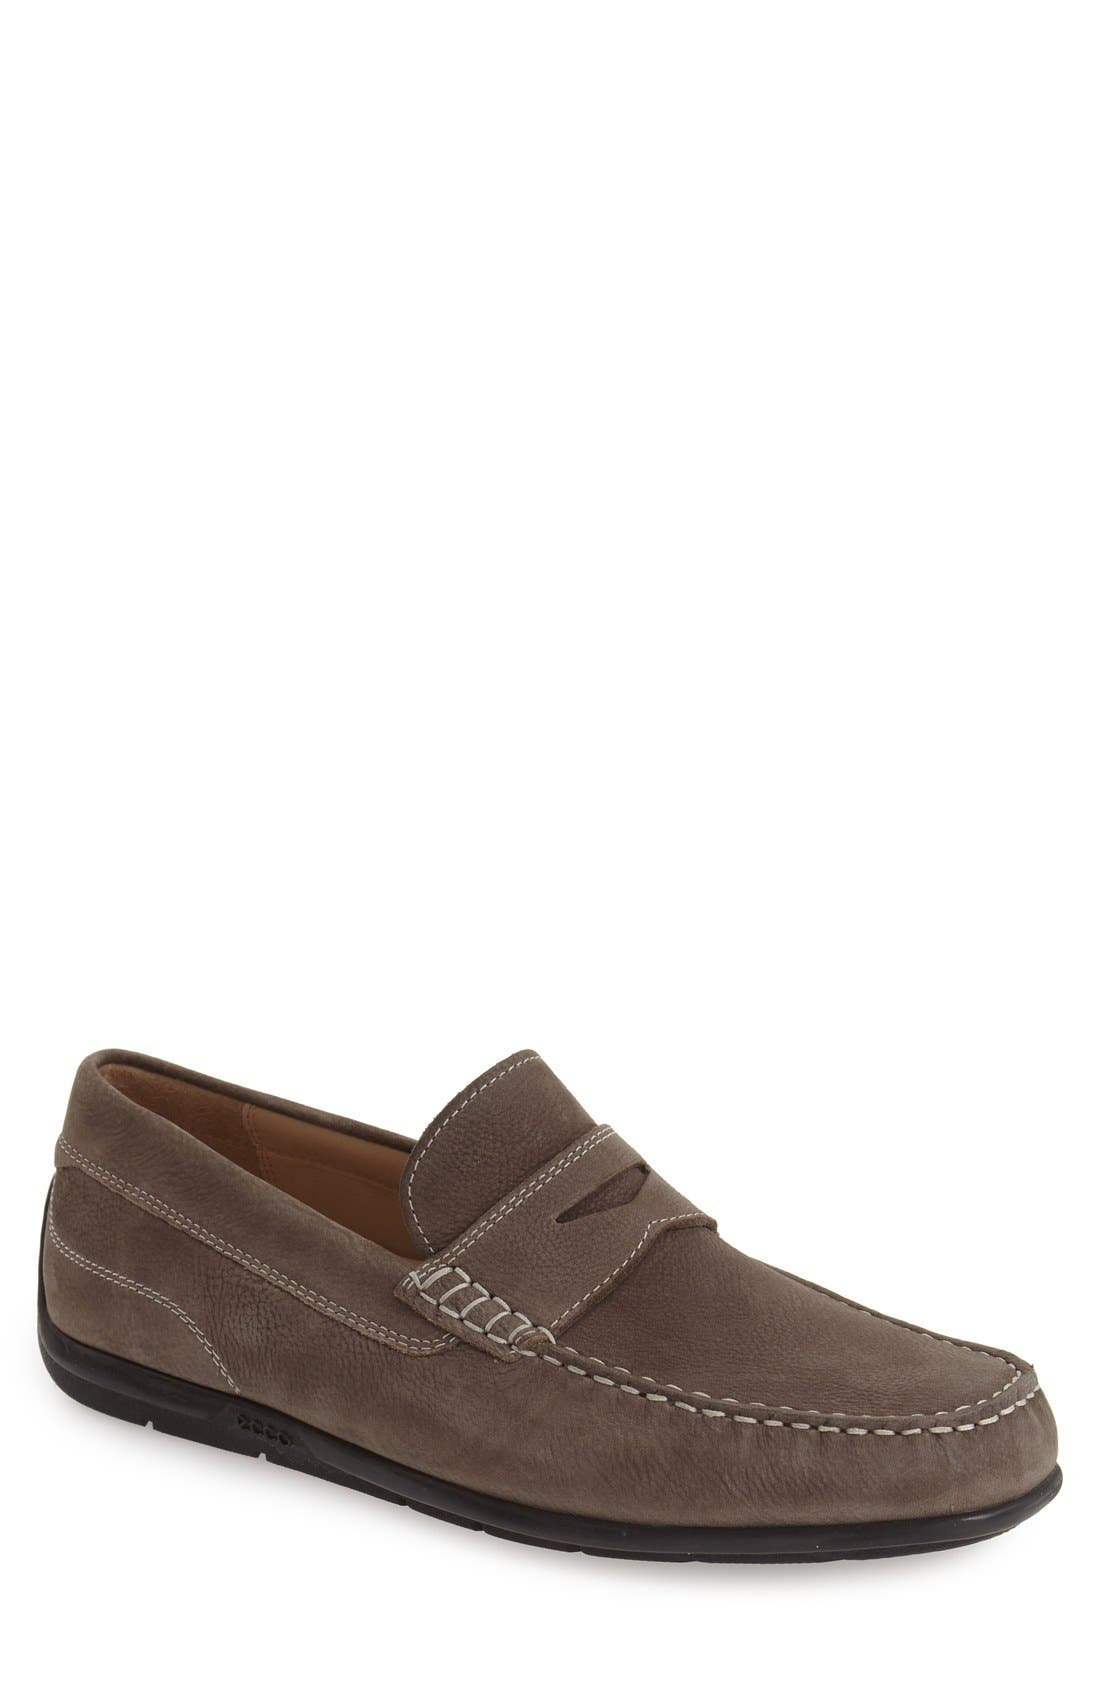 'Classic Moc 2.0' Penny Loafer,                             Main thumbnail 1, color,